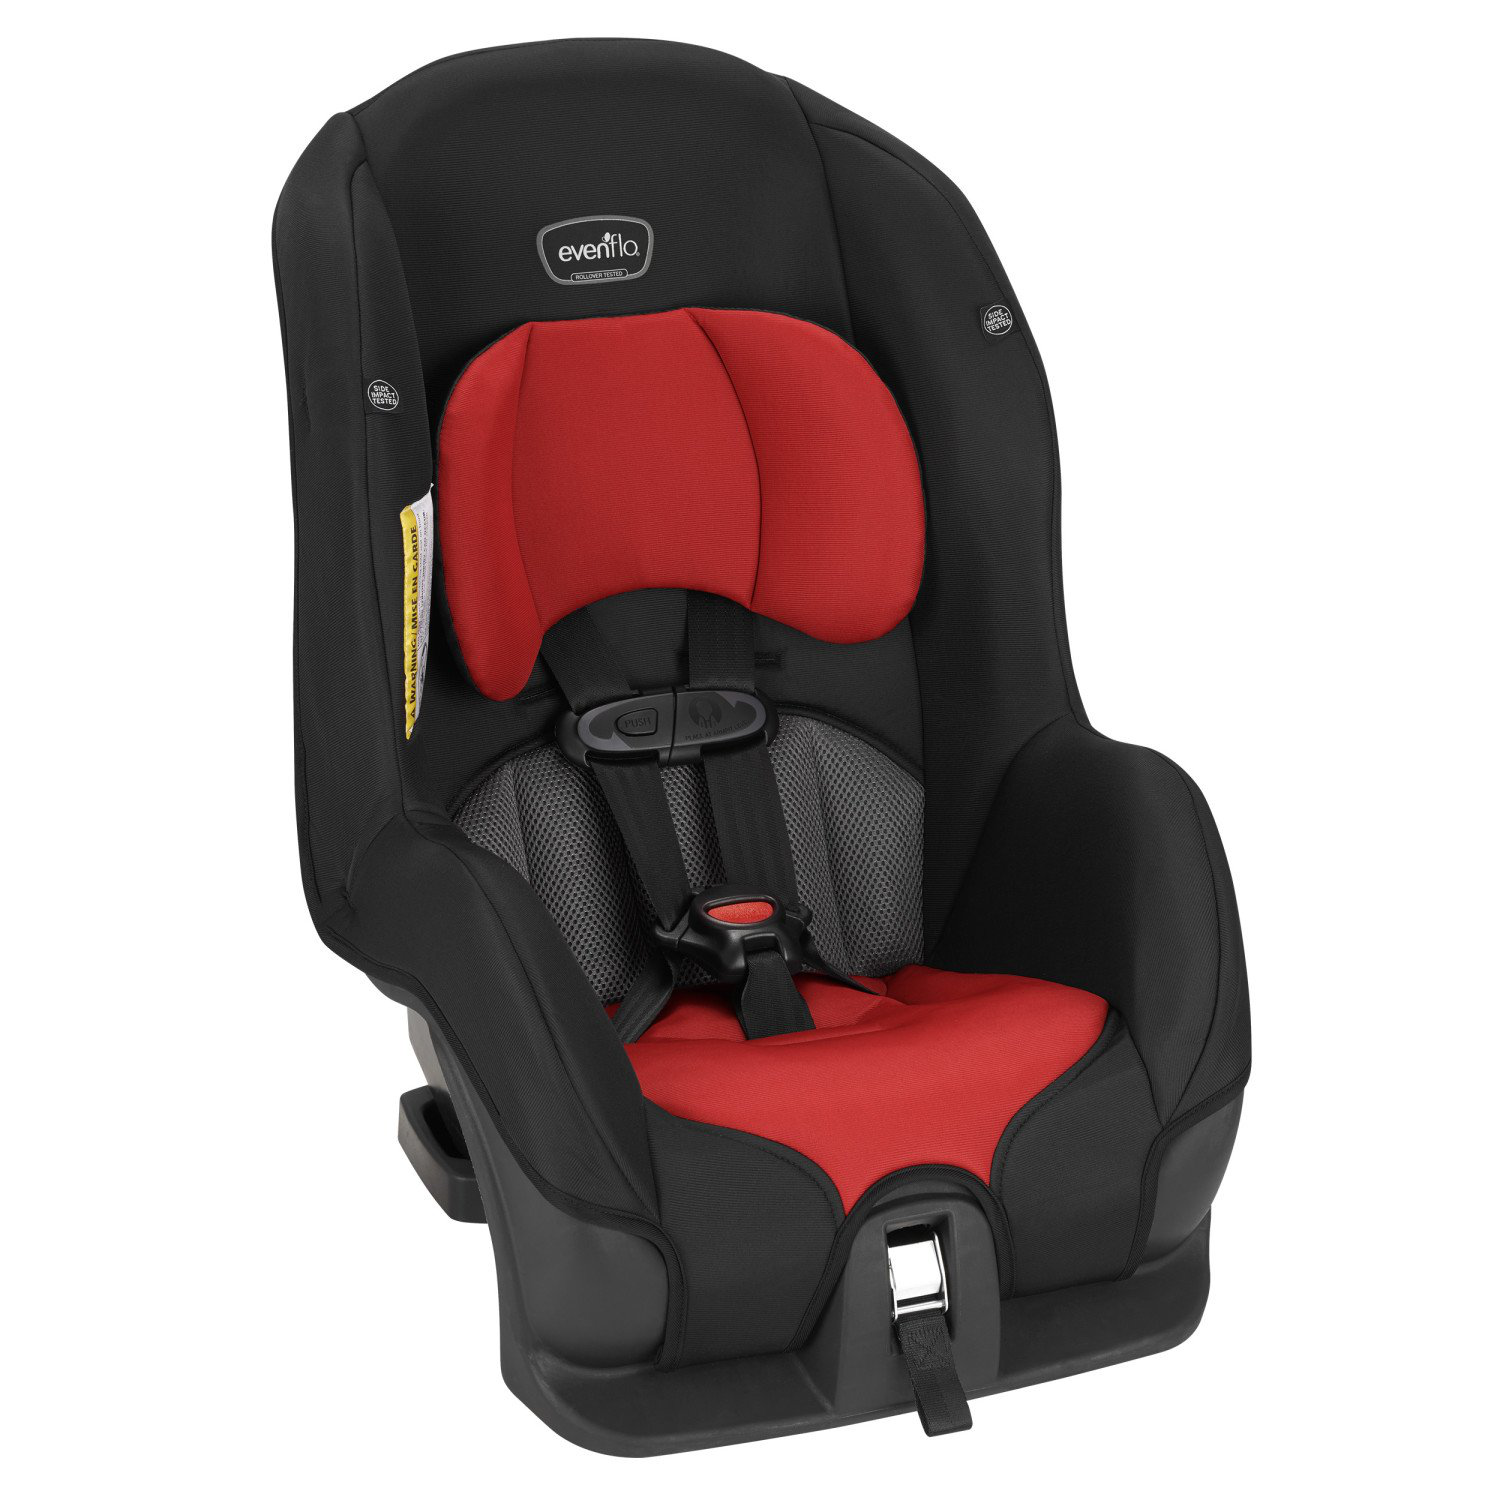 Evenflo Tribute LX Convertible Car Seat Plastic & Fabric For